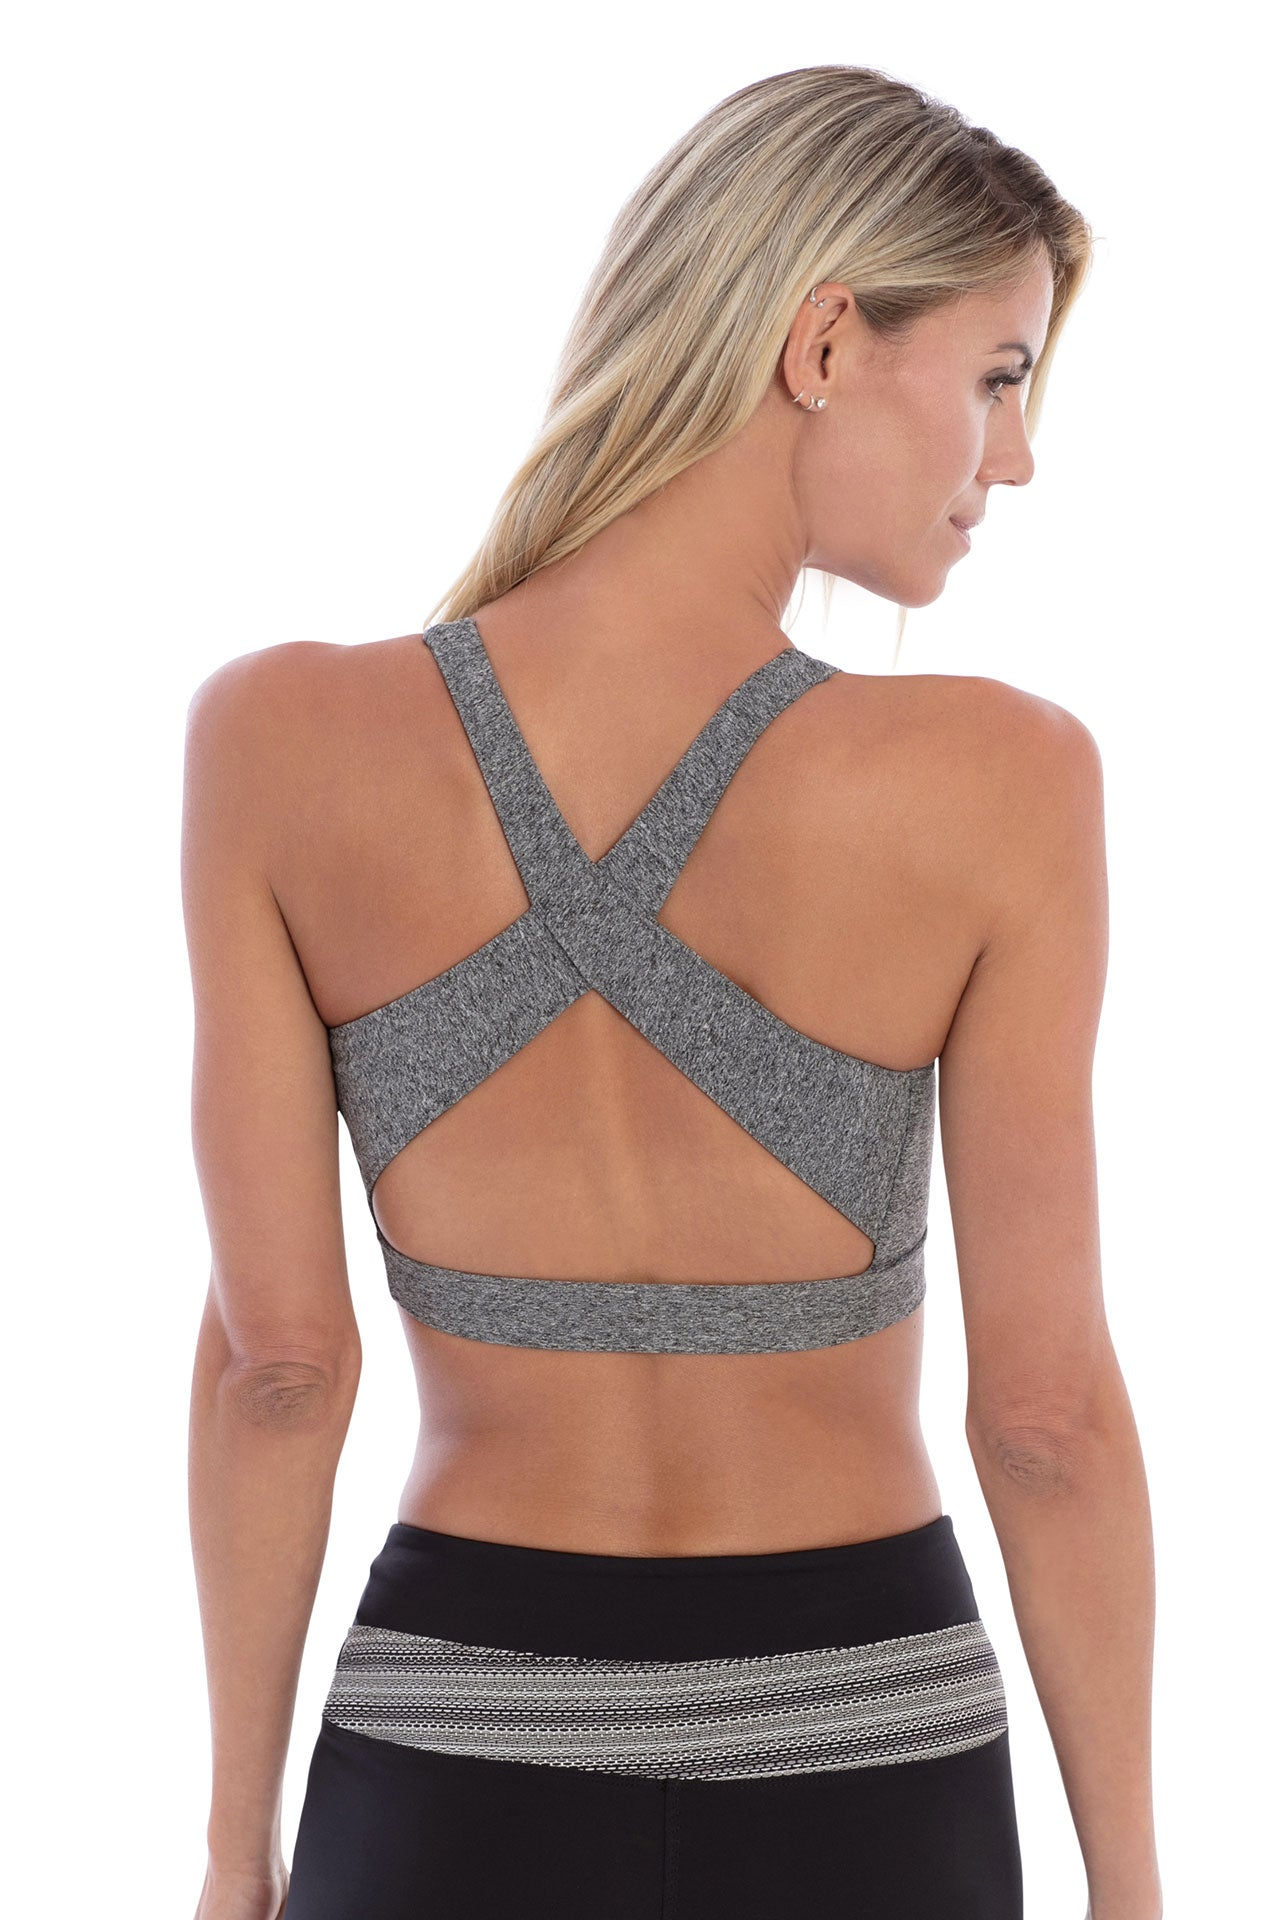 Track & Bliss Star Crossed Studded Bra - Grey - Sculptique